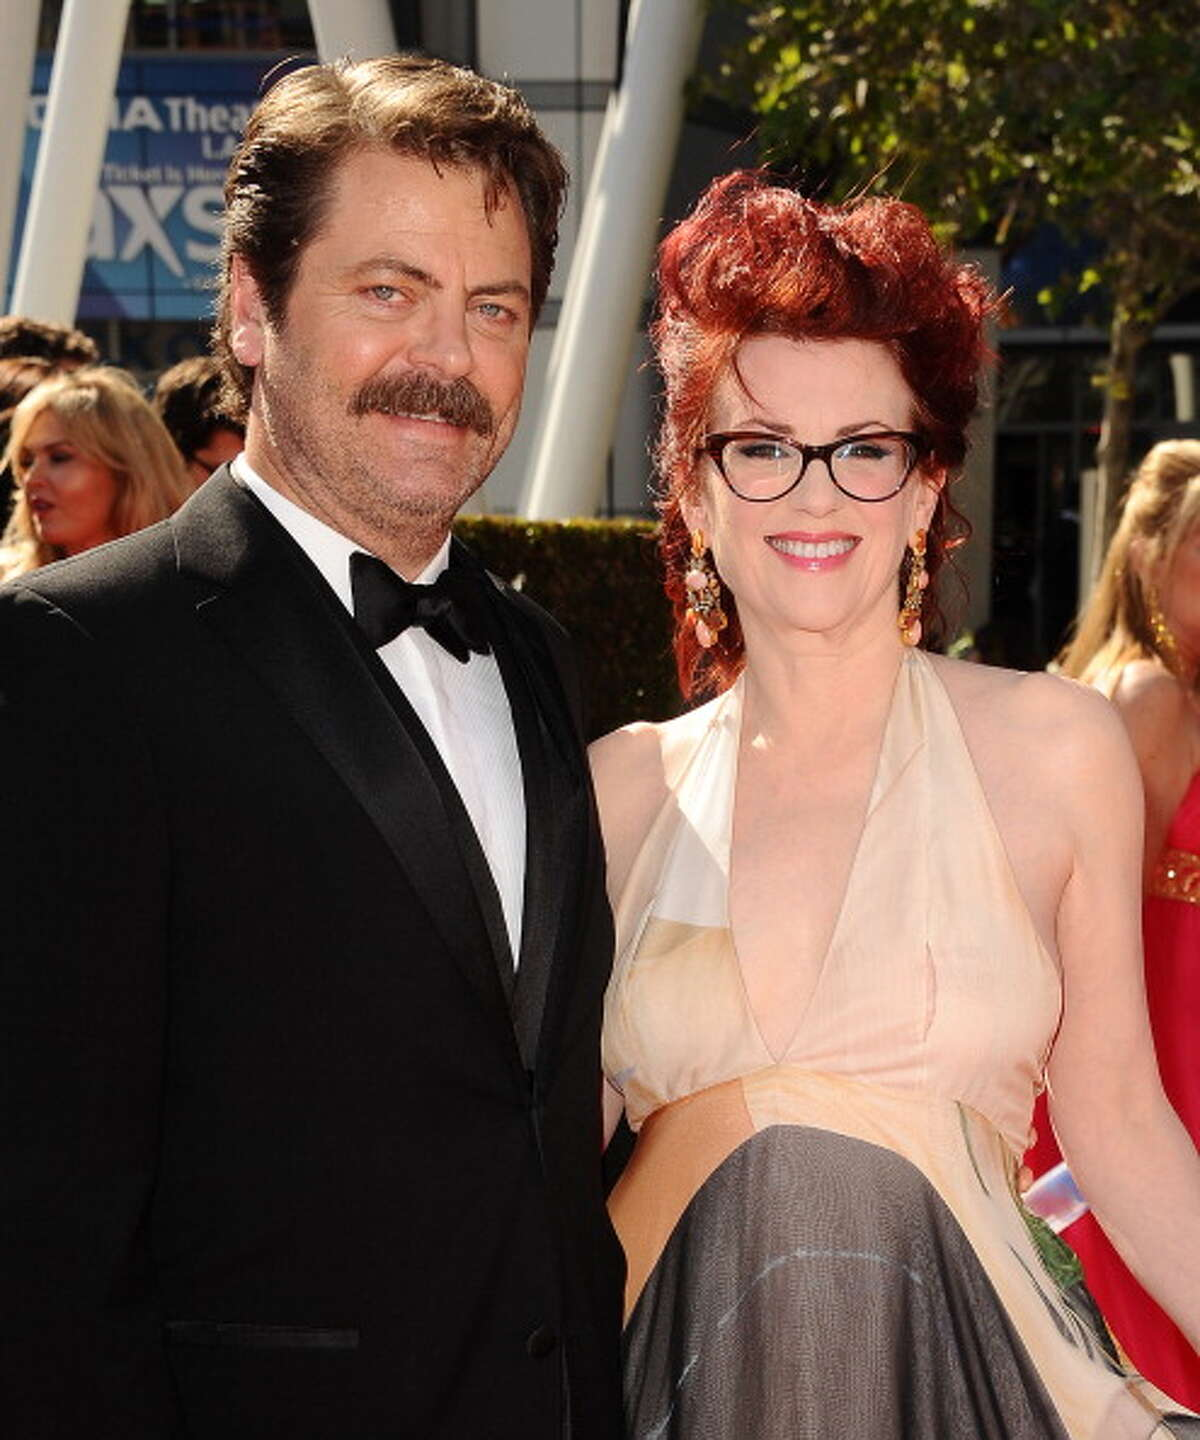 Funny couple Nick Offerman and Megan Mullally married in 2003. Source: hollywoodgossip.com